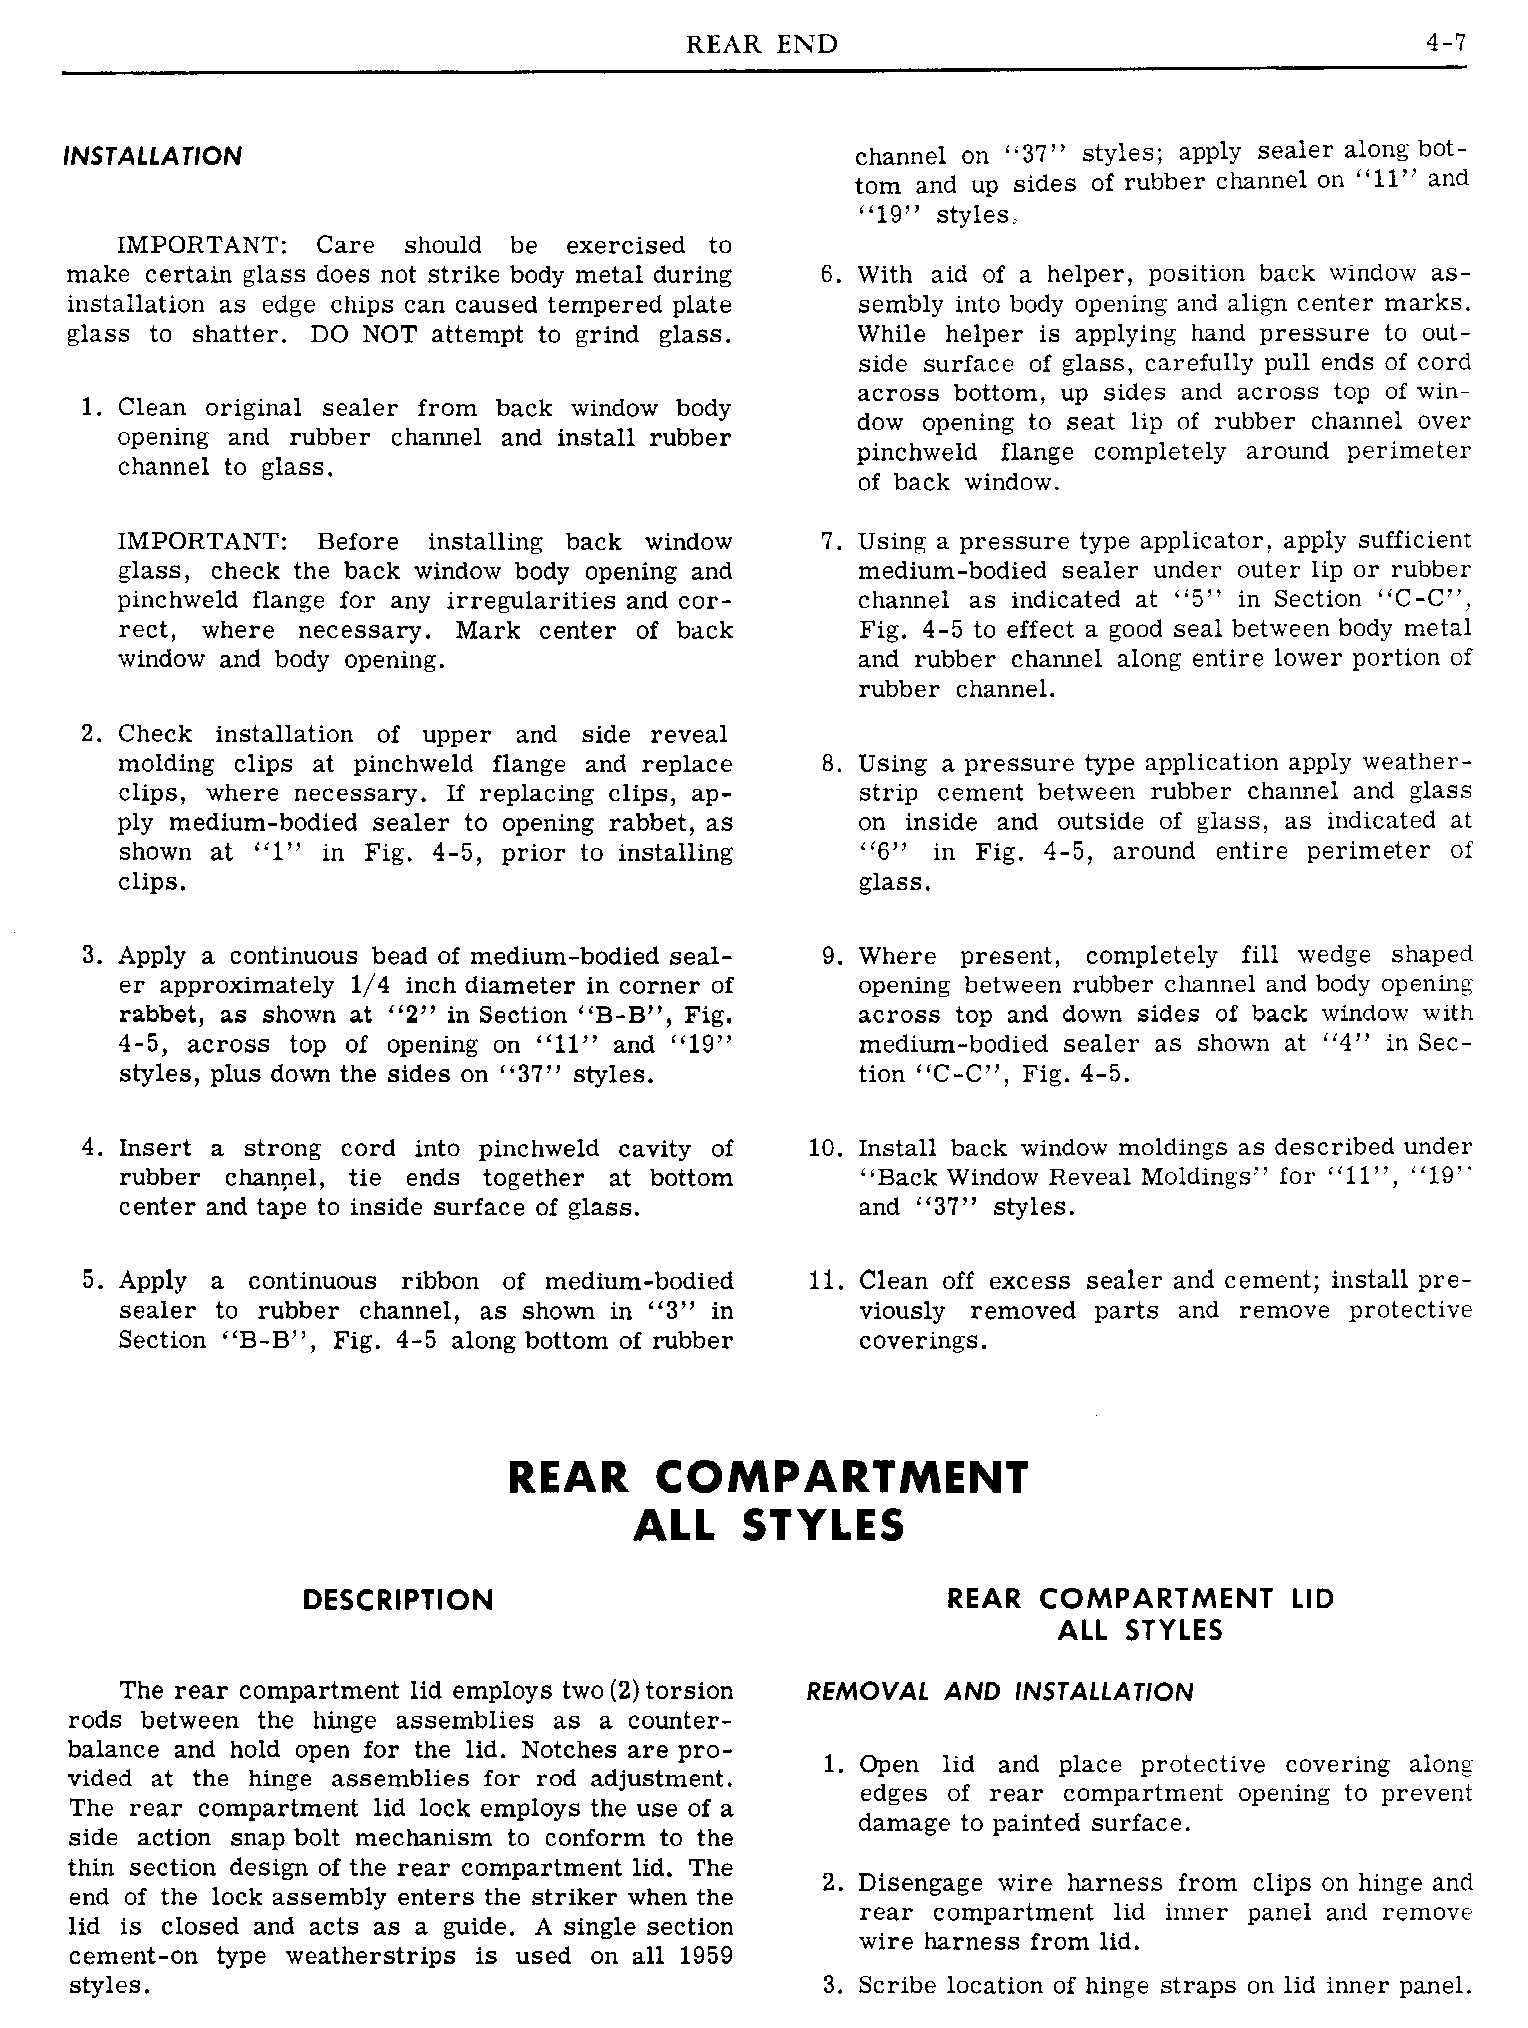 1960 Pontiac Shop Manual- Rear End Page 7 of 26